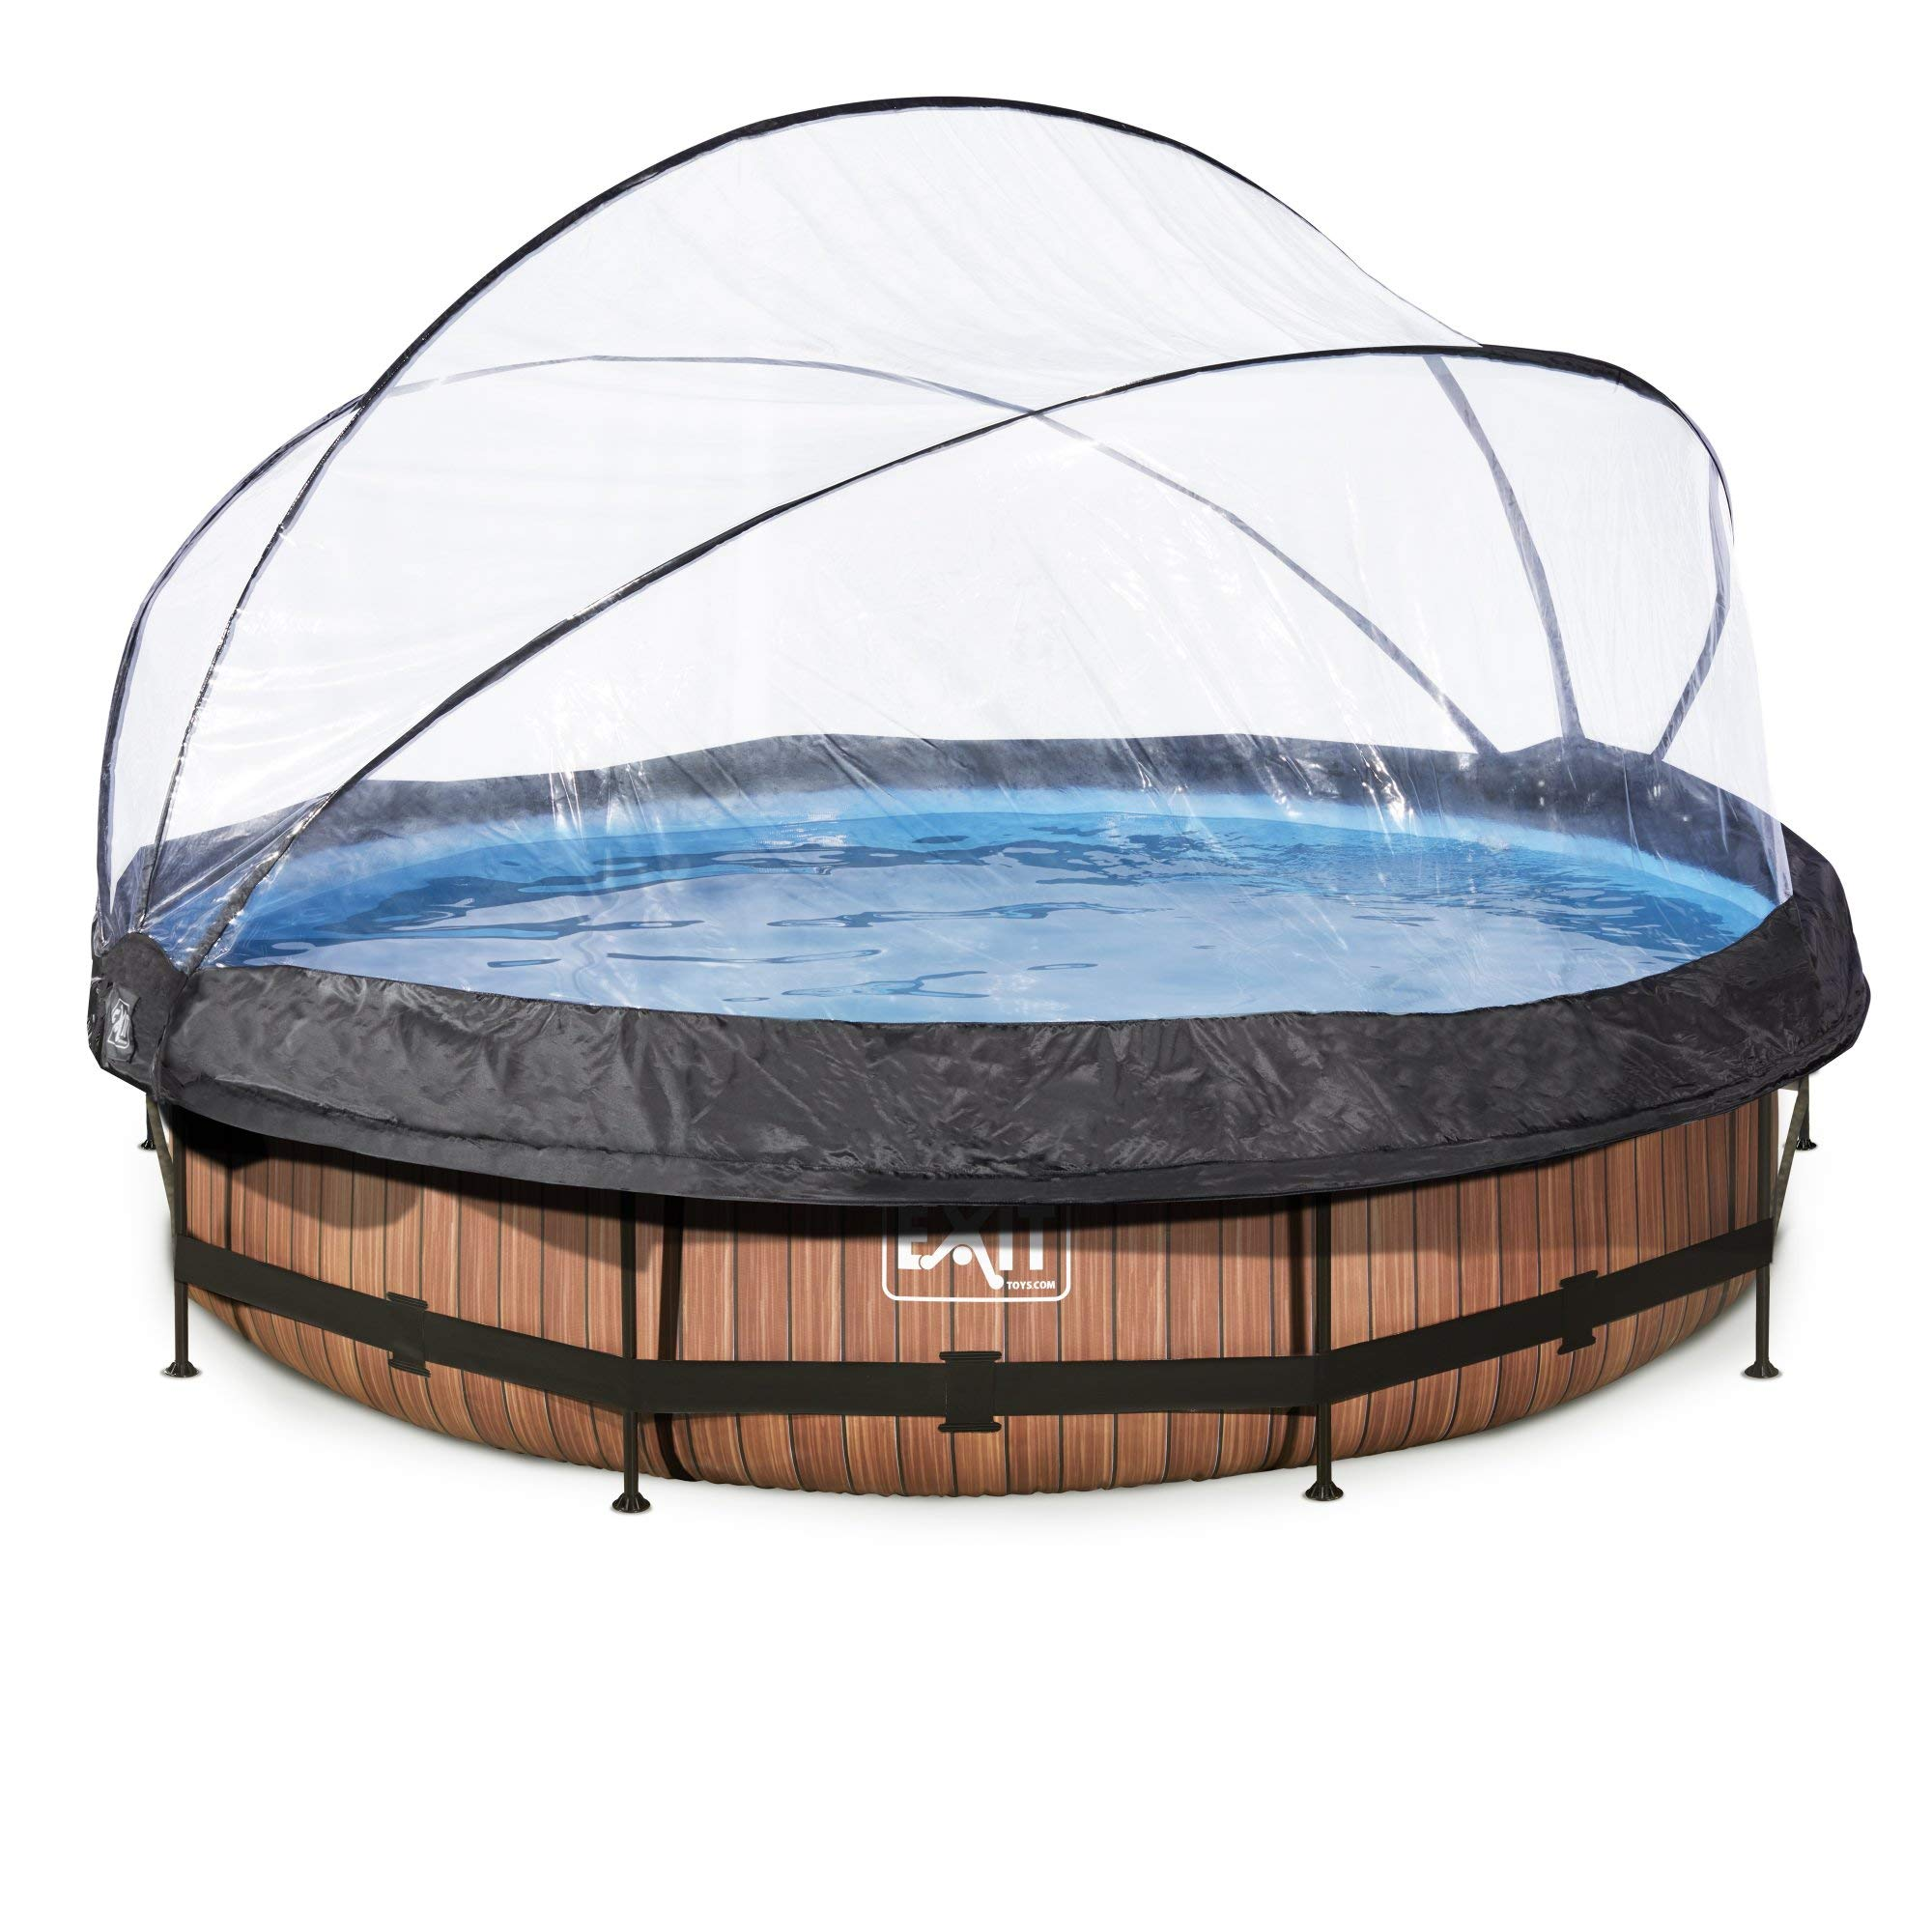 EXIT Wood Pool ø360x76cm with Dome and Filter Pump - Brown - Piscina (Piscina con Anillo Hinchable, Círculo, 6125 L, Marrón, Child & Adult, 5 Personas(s)): Amazon.es: Juguetes y juegos